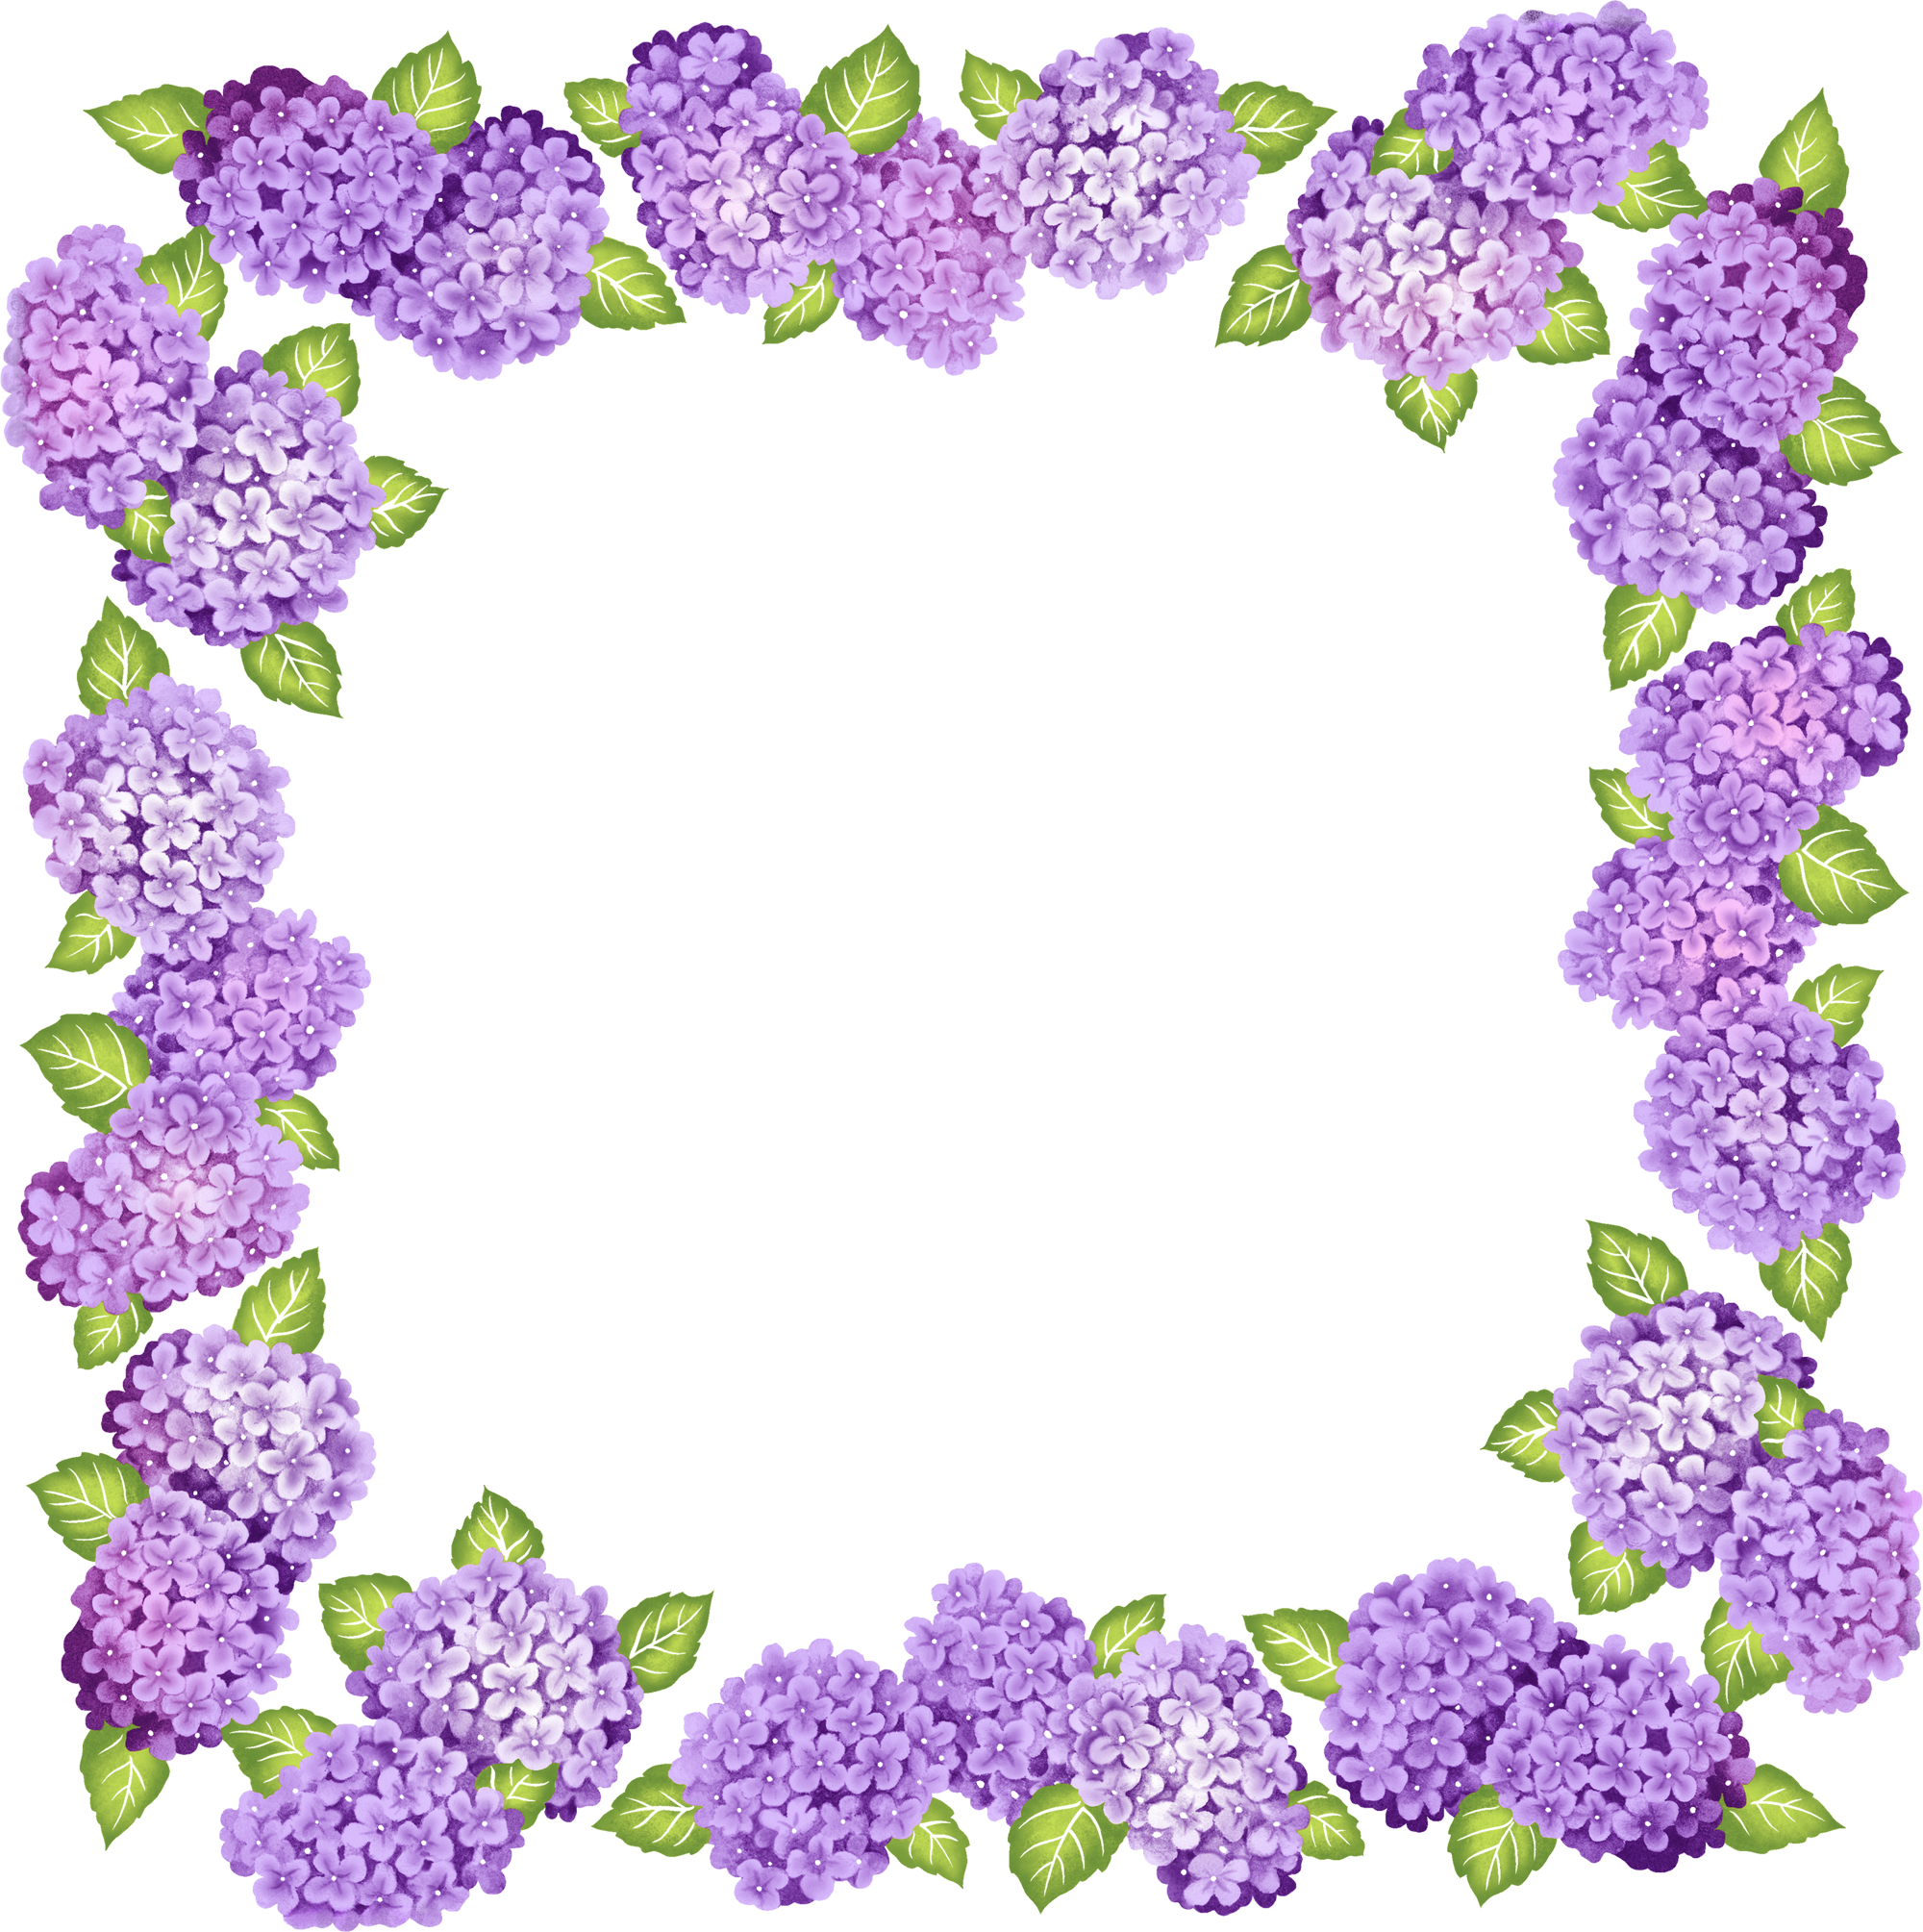 Clipart rose lavendar. Transparent purple frame polyvore